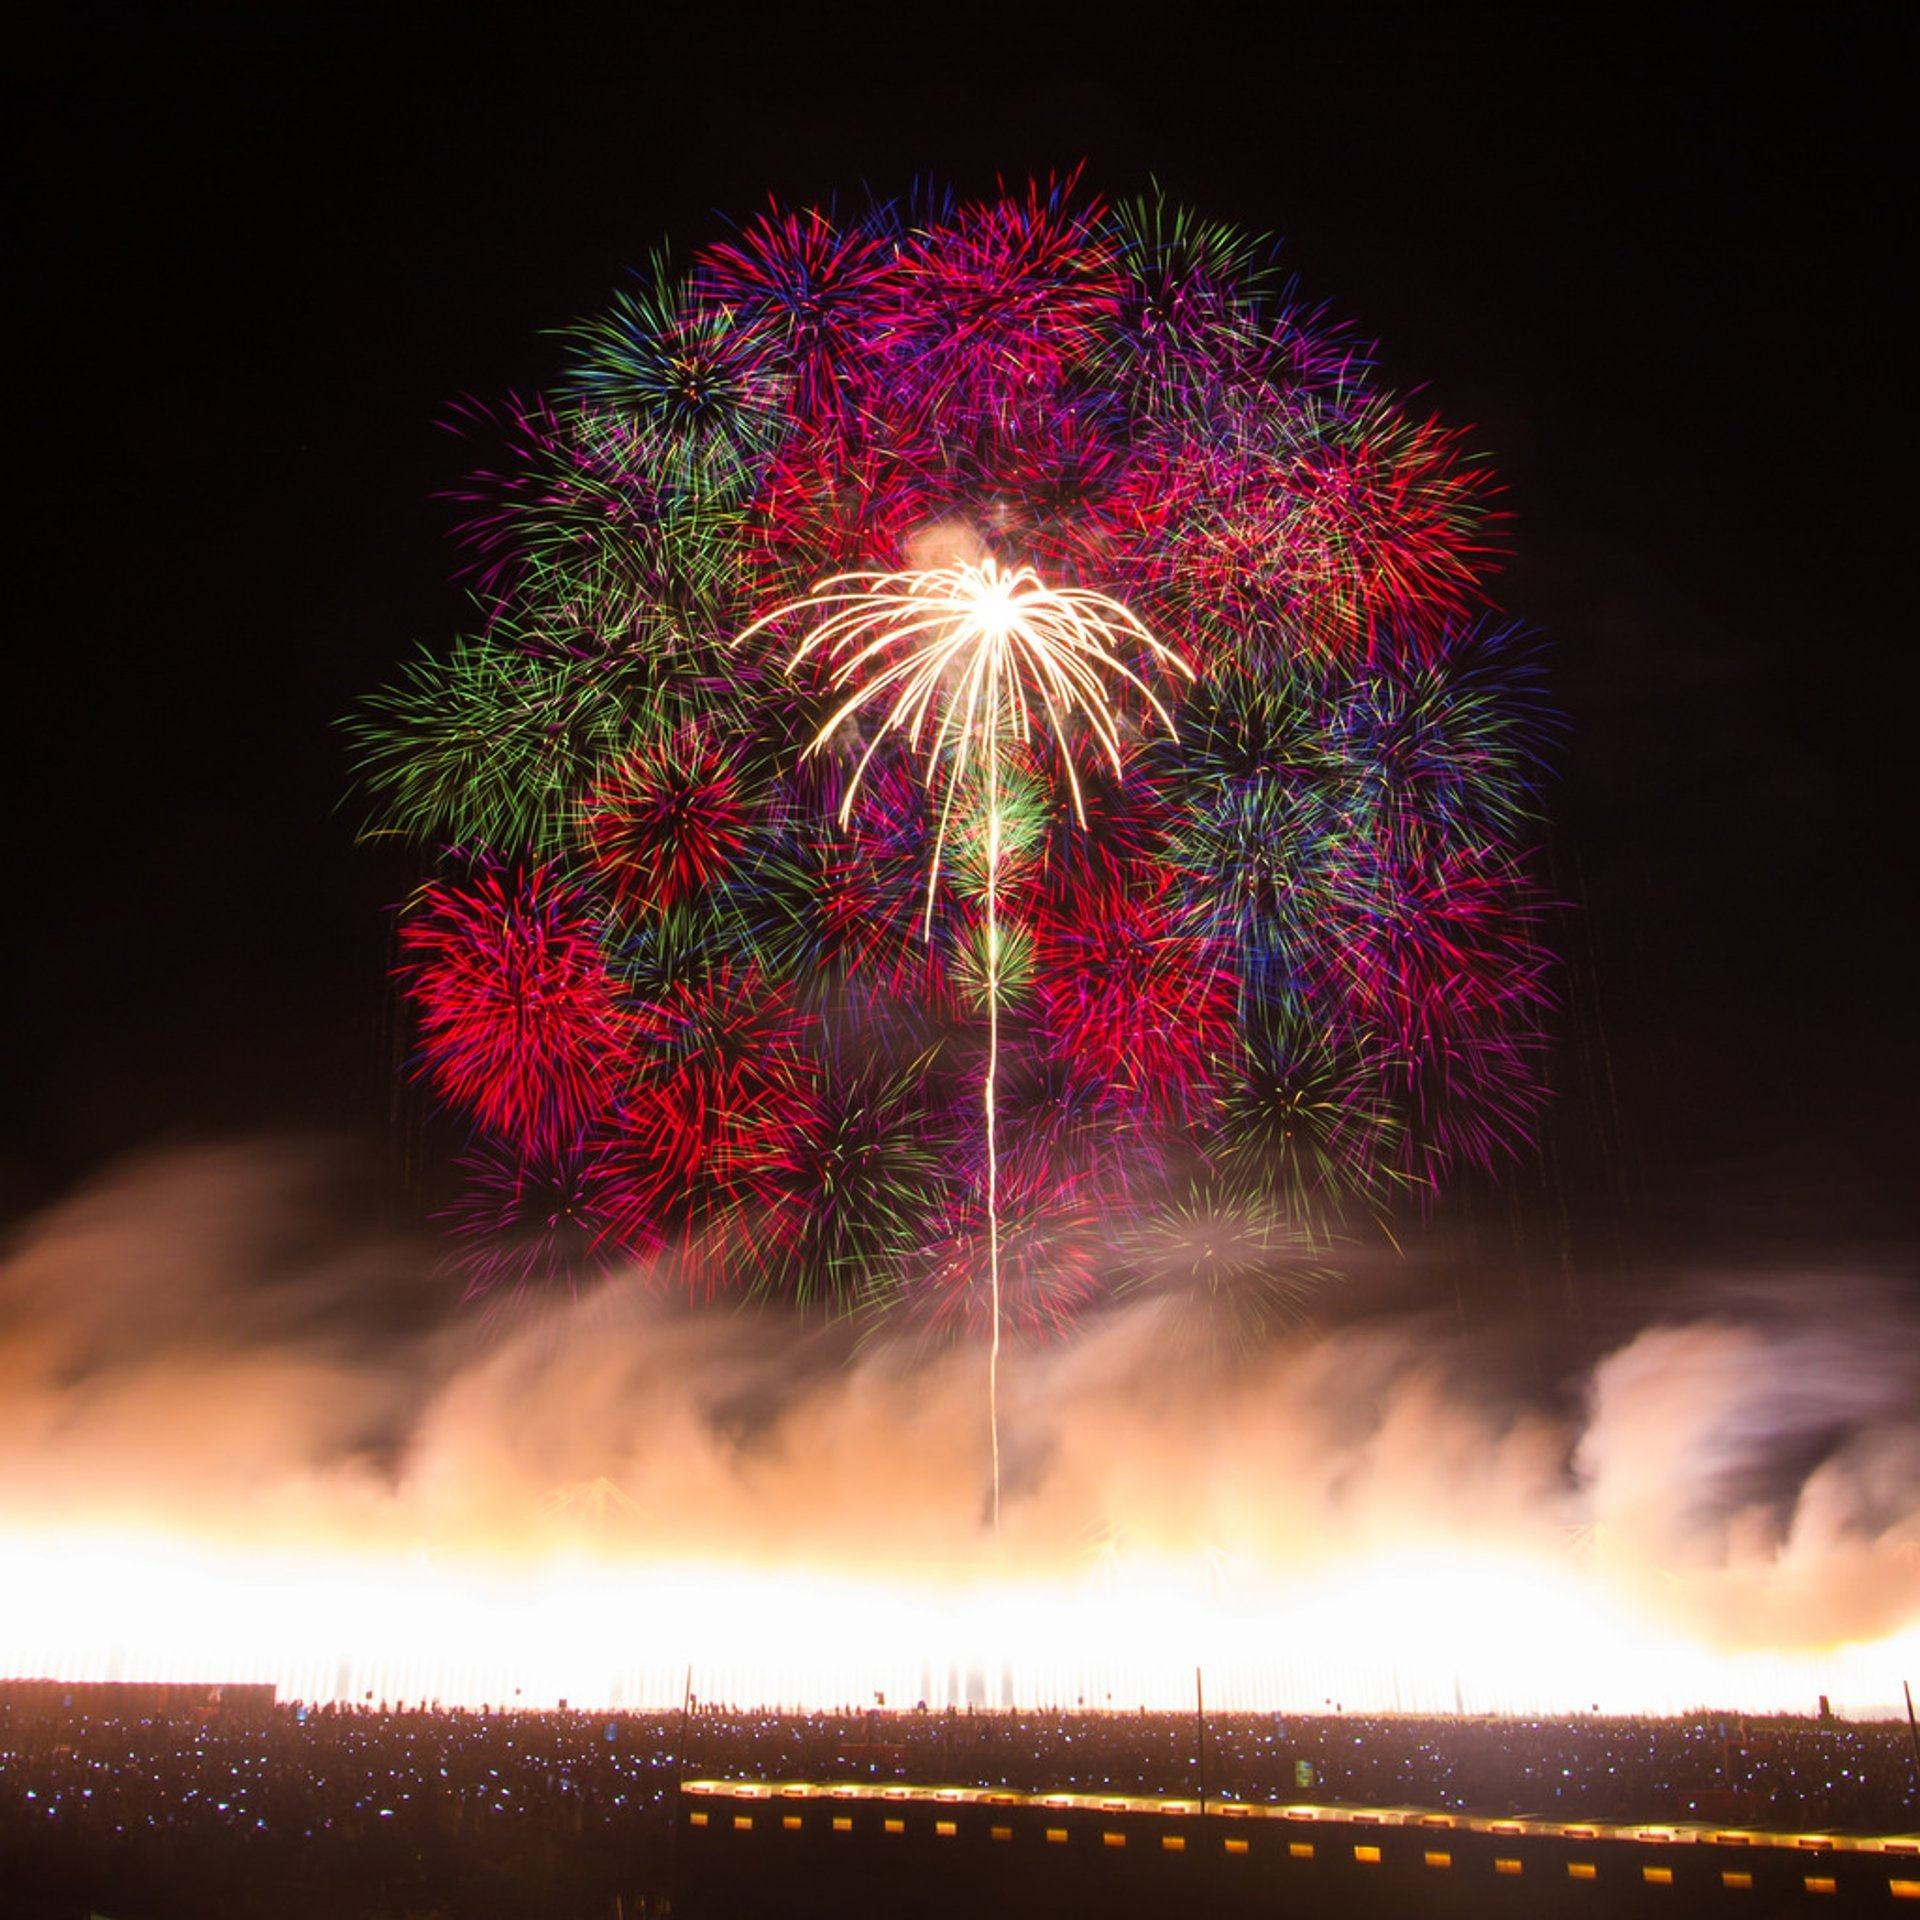 Nagaoka Fireworks Festival in Japan - Best Season 2019